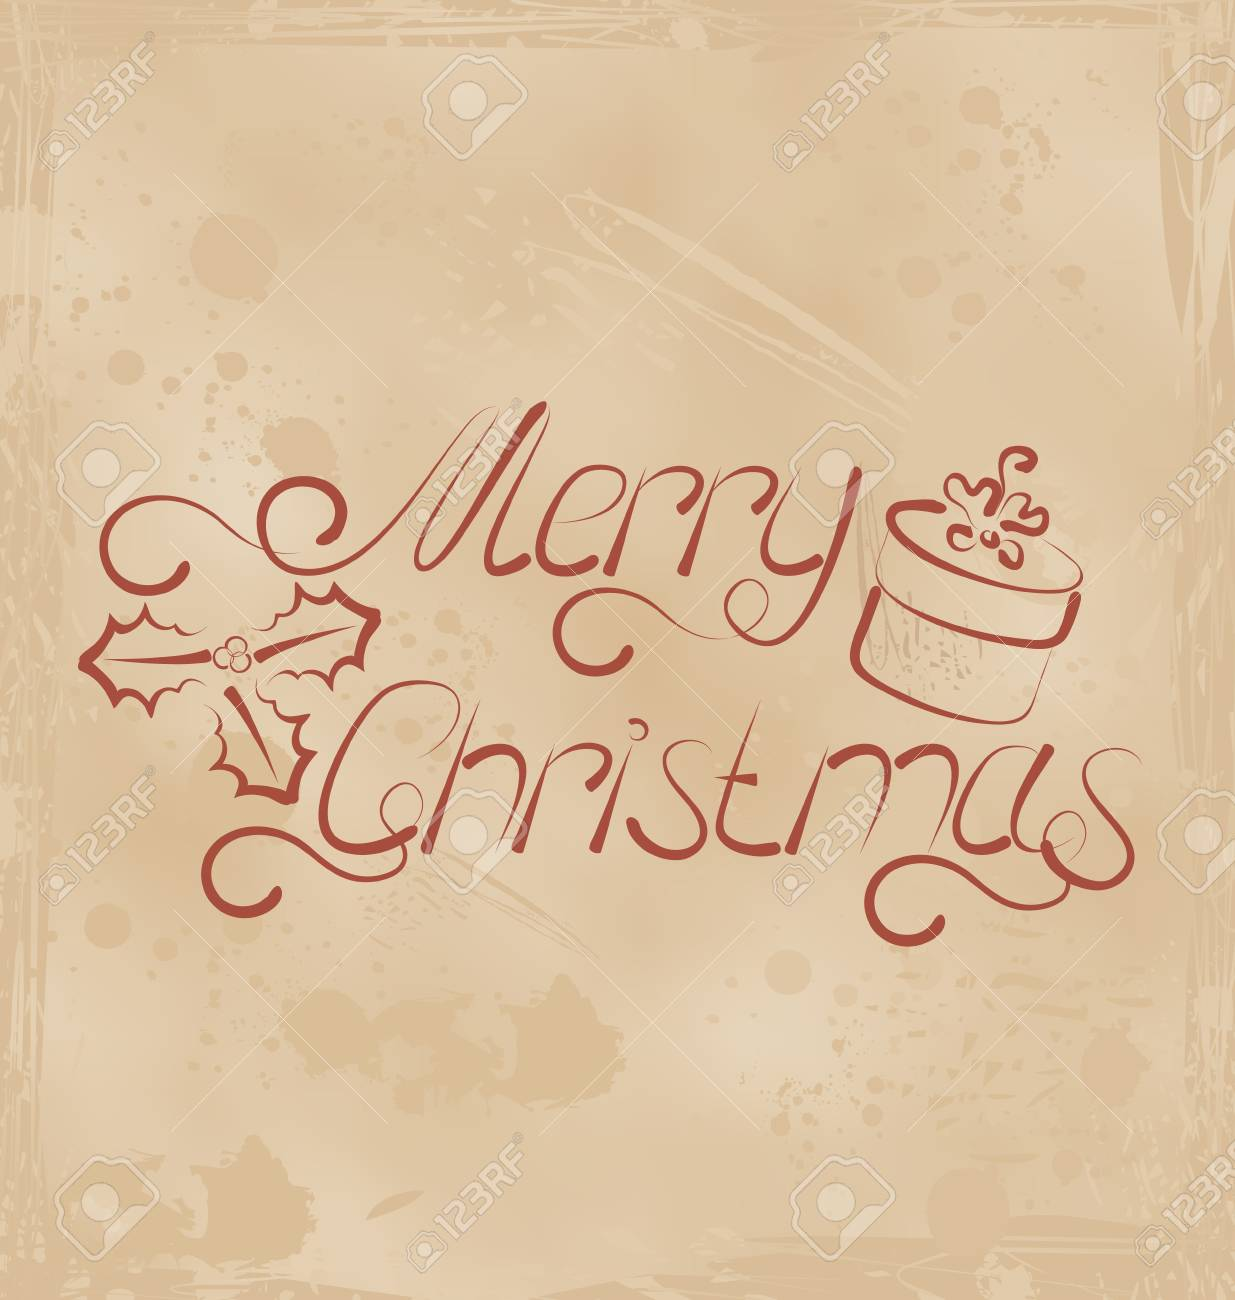 Illustration calligraphic Christmas lettering, grunge background - vector Stock Photo - 22096372